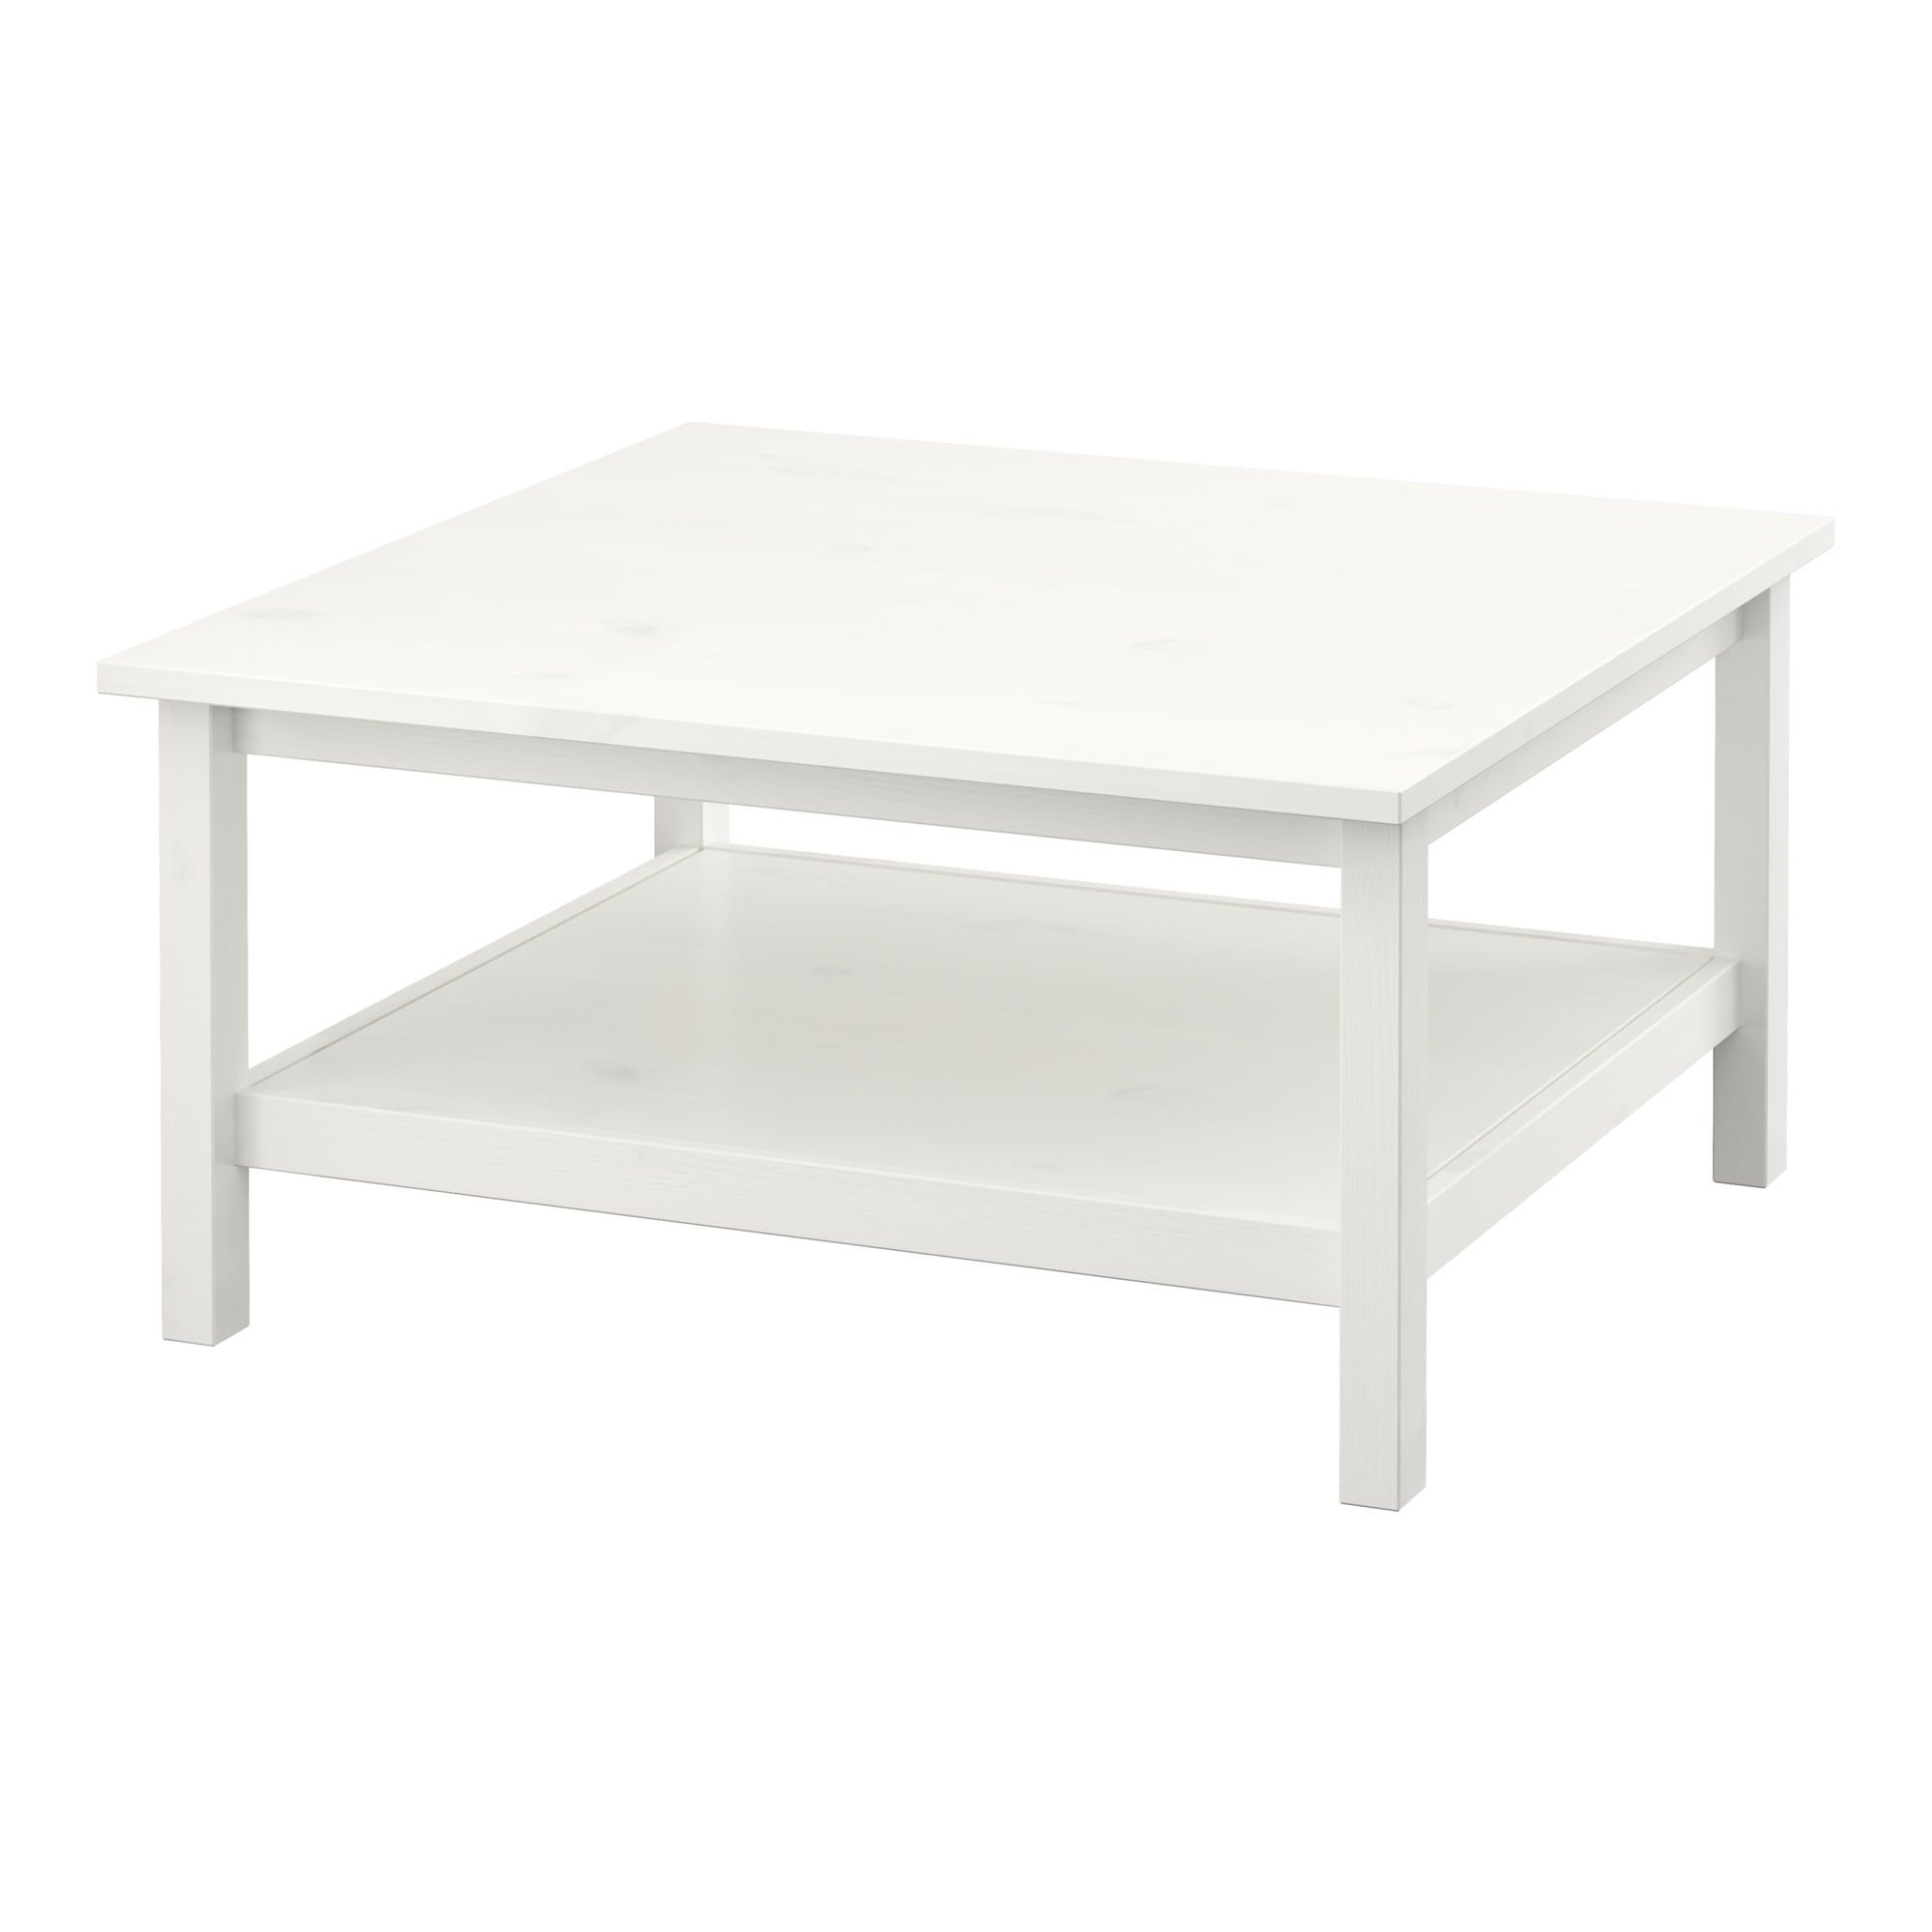 Hemnes Coffee Table White Stain White 35 3 8x35 3 8 90x90 Cm